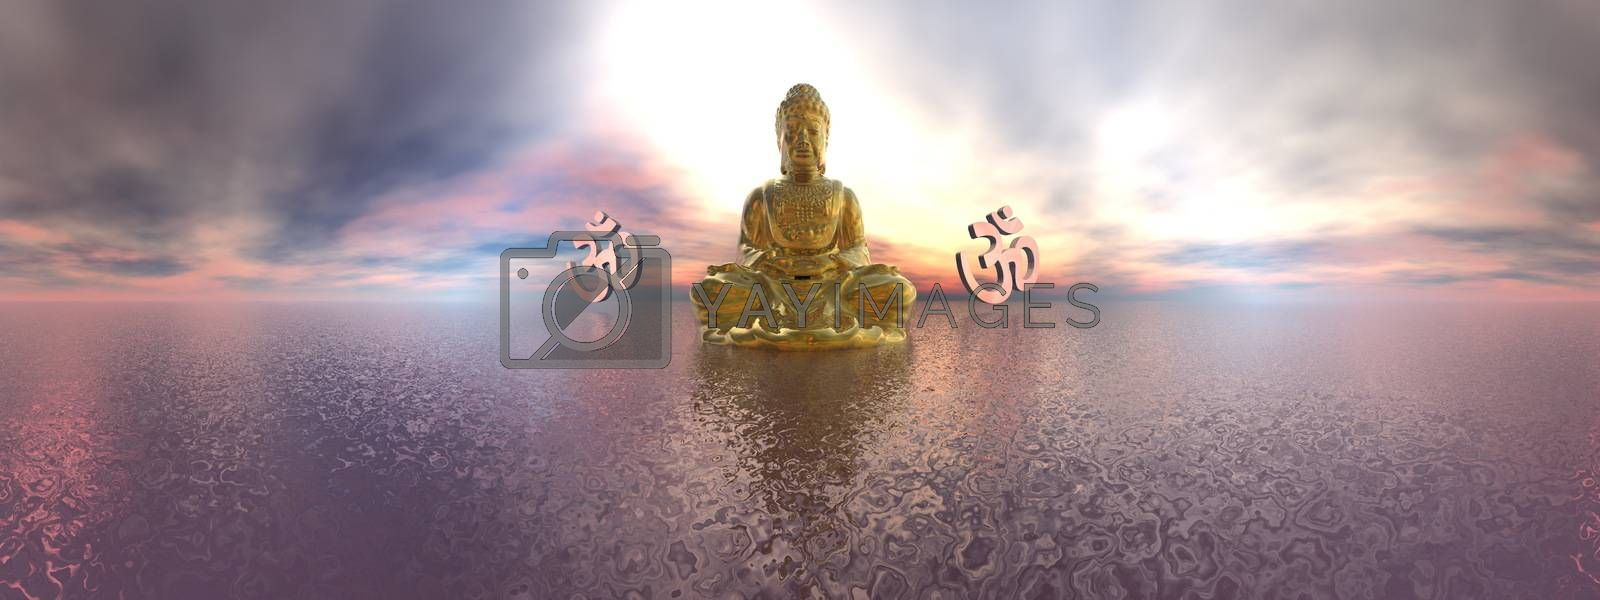 Buddha and aum symbol upon ocean by colorful sunset, 360 degrees effect - 3D render